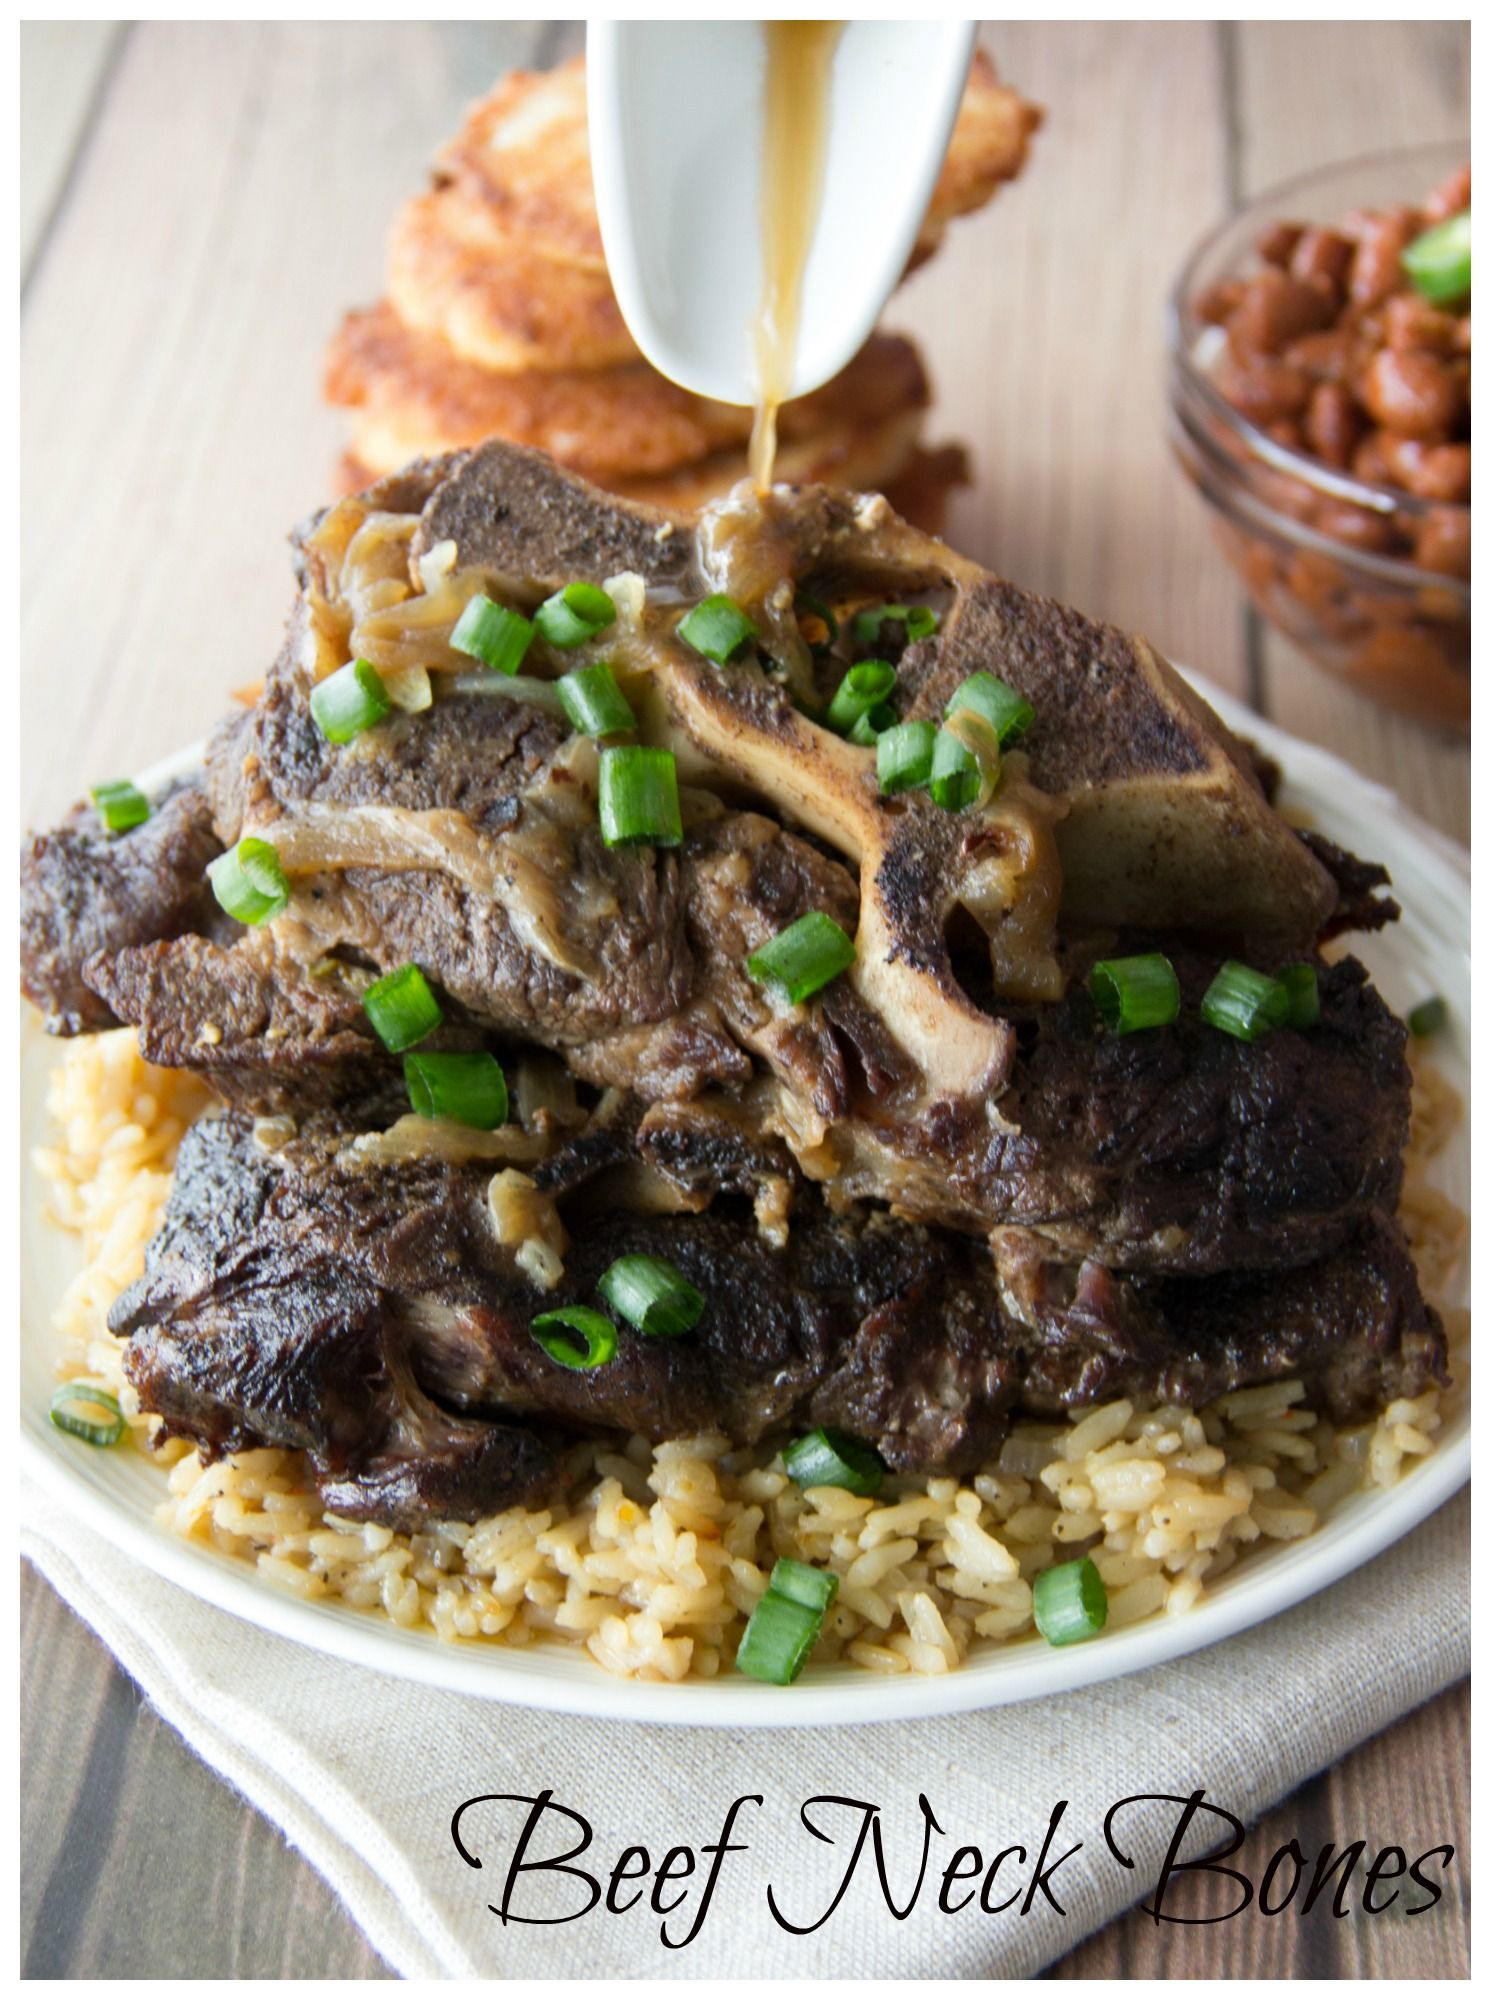 Soul Food Recipe These Tender And Succulent Fall Off The Bone Beef Neck Bones Will Take You Right Back To Your Beef Neck Bones Recipe Beef Neck Bones Food